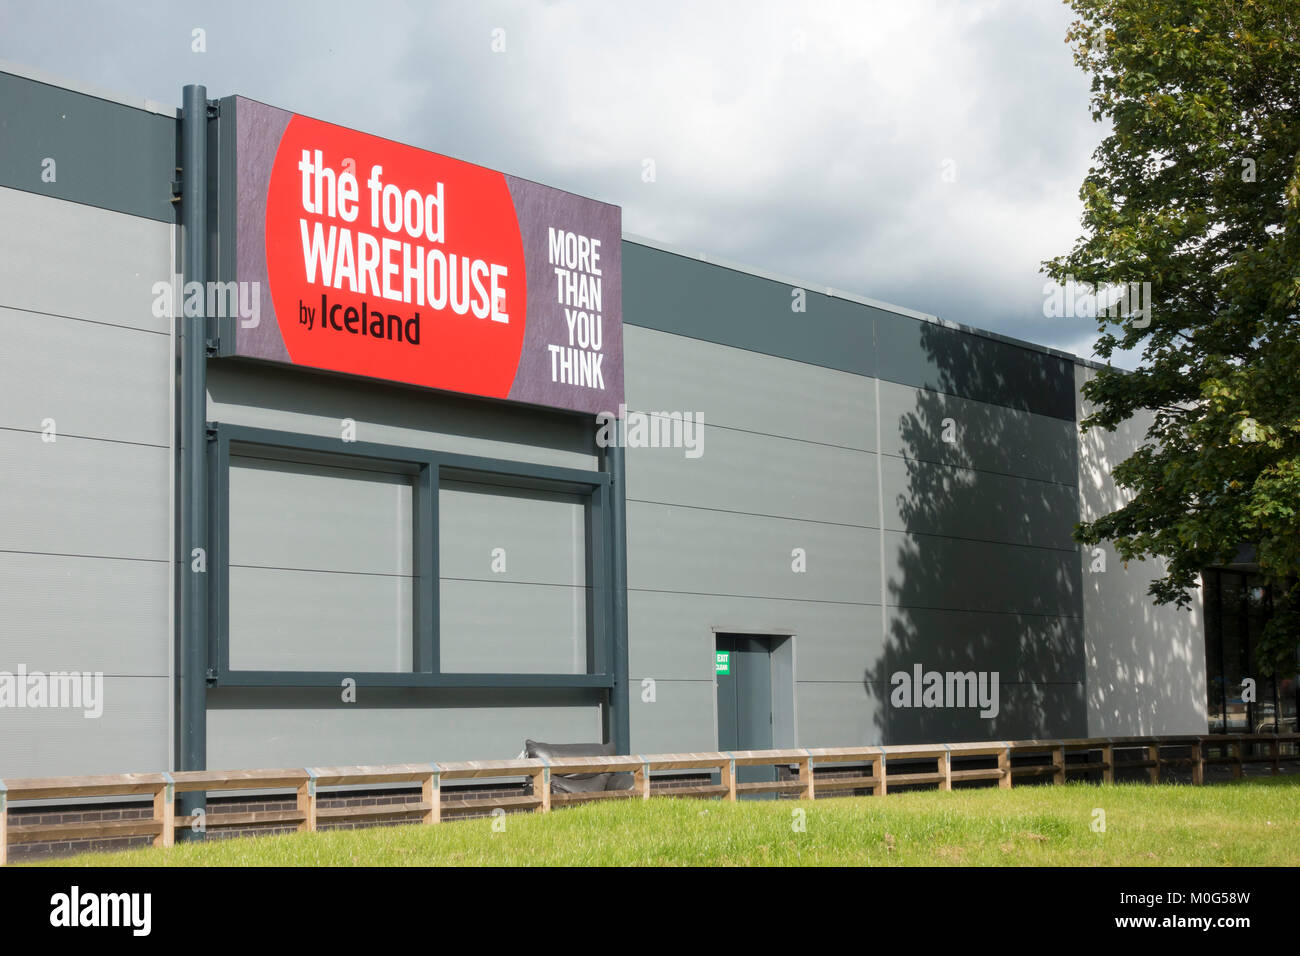 The Food Warehouse by Iceland sign in Breightmet Bolton - Stock Image